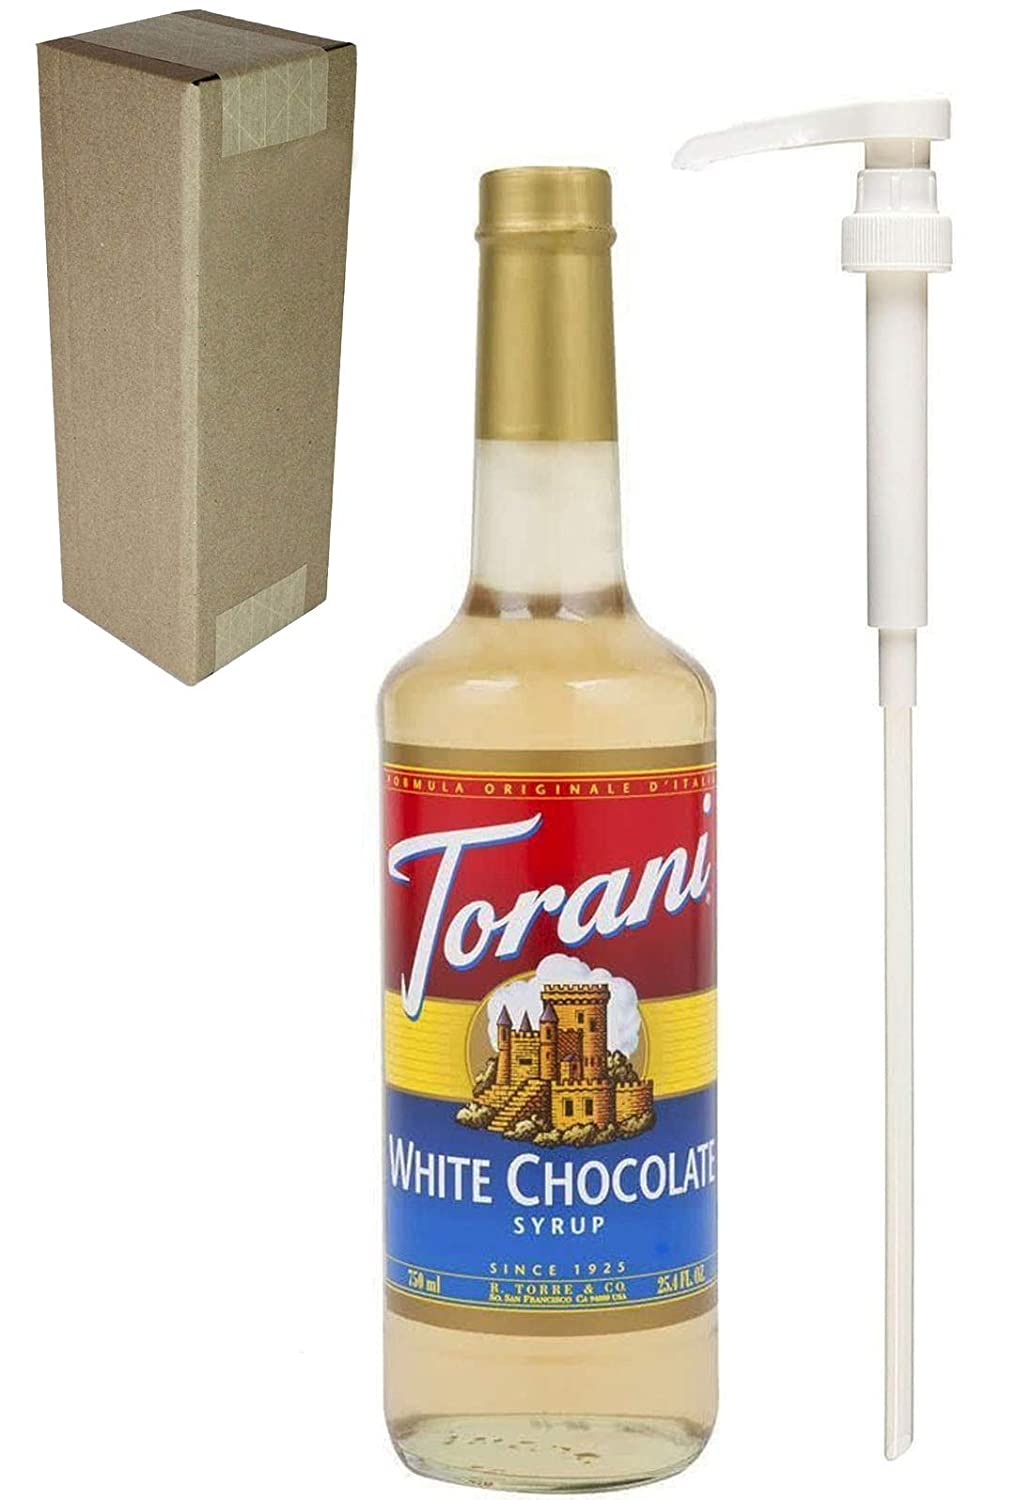 Torani White Chocolate Flavoring Syrup, 750mL (25.4 Fl Oz) Glass Bottle, Individually Boxed, With White Pump